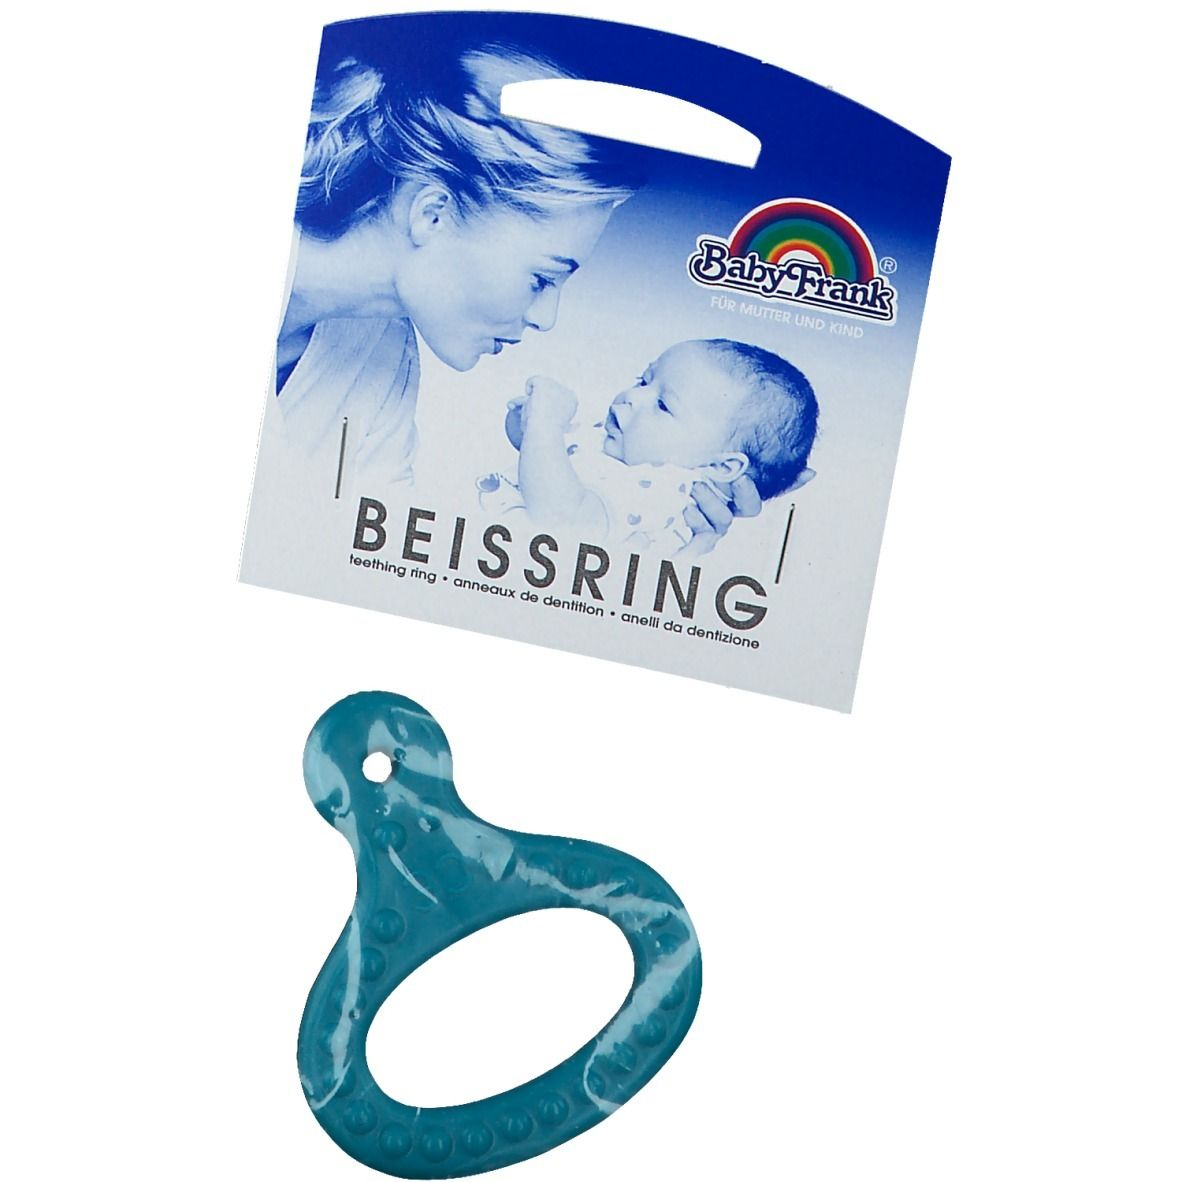 Baby-Frank® Beissring mit Griff mint